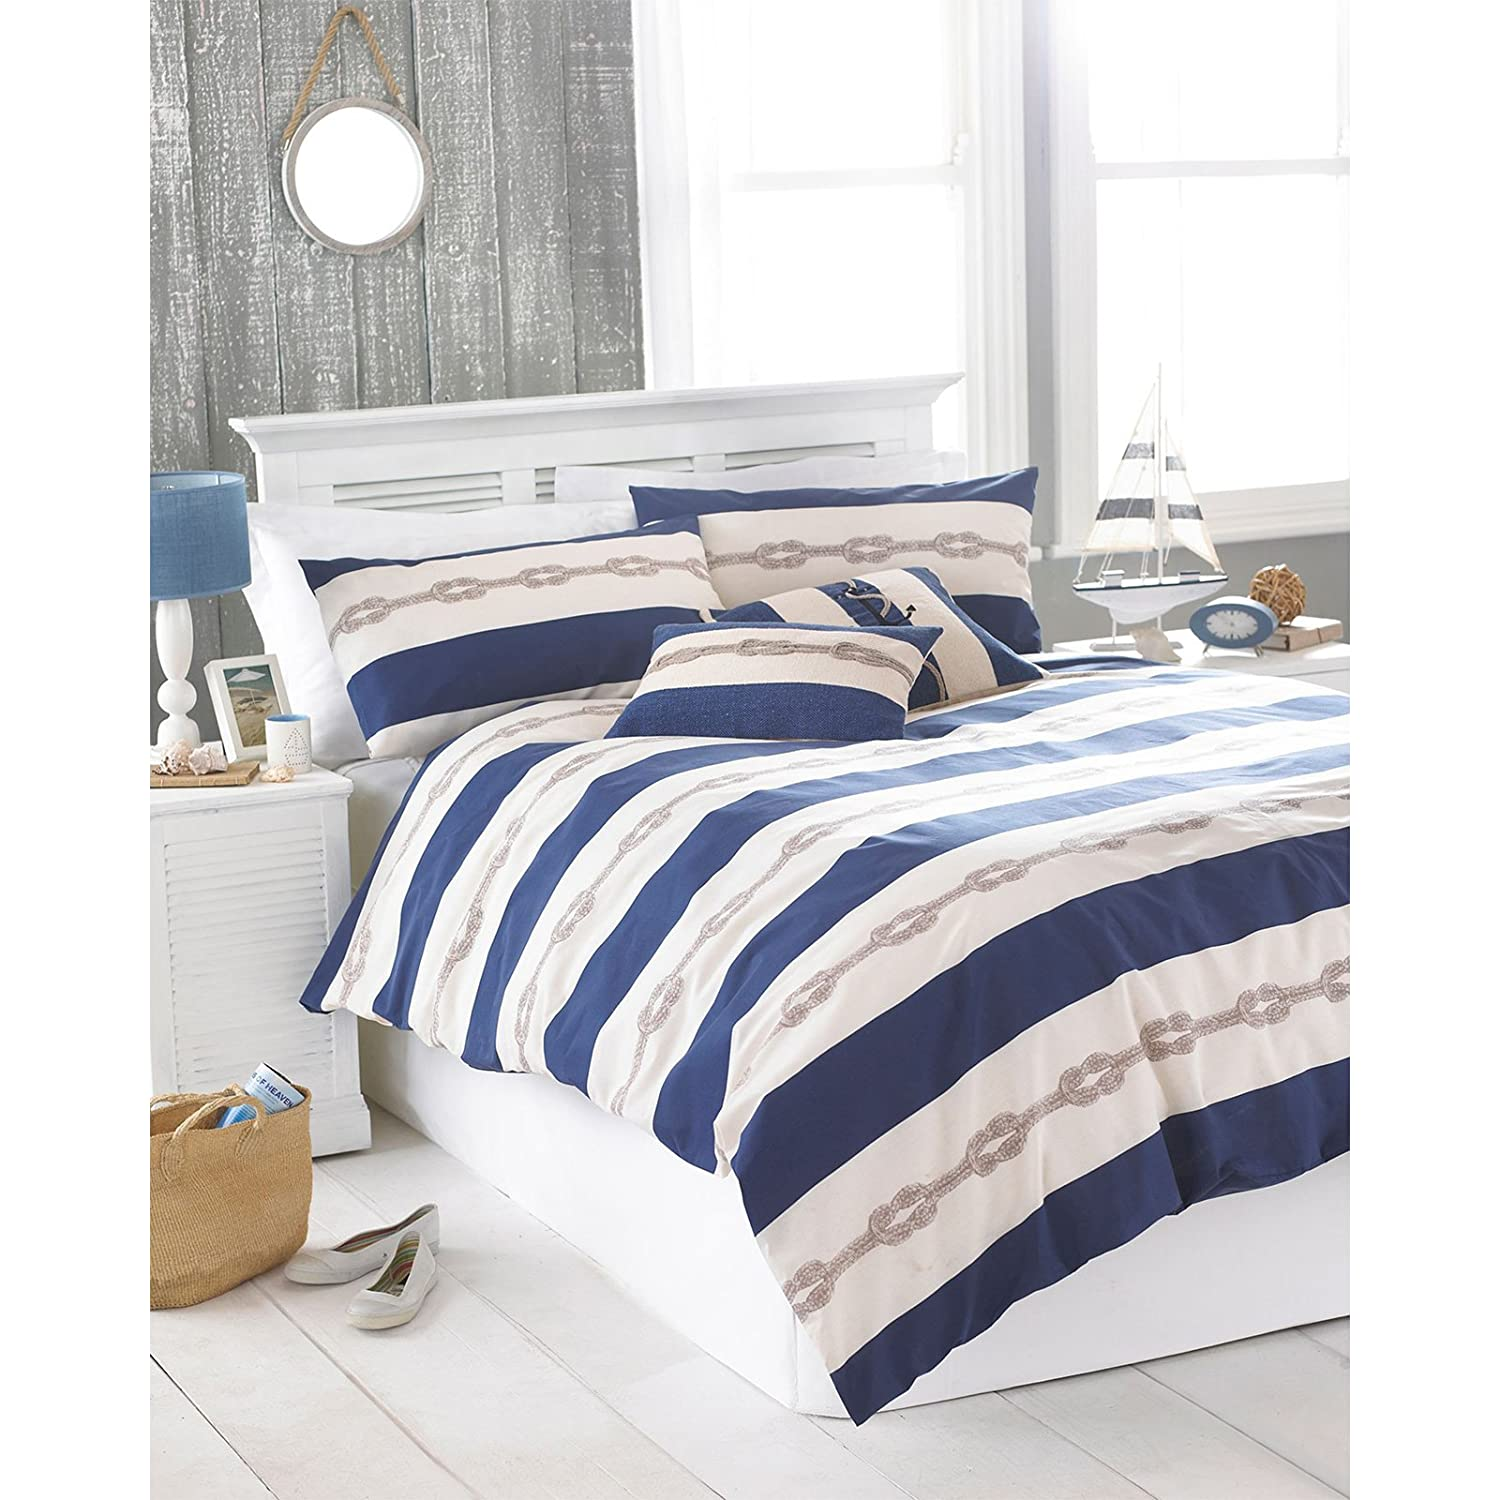 just contempo nautical duvet cover set king red amazoncouk  - just contempo nautical duvet cover set king red amazoncouk kitchen home